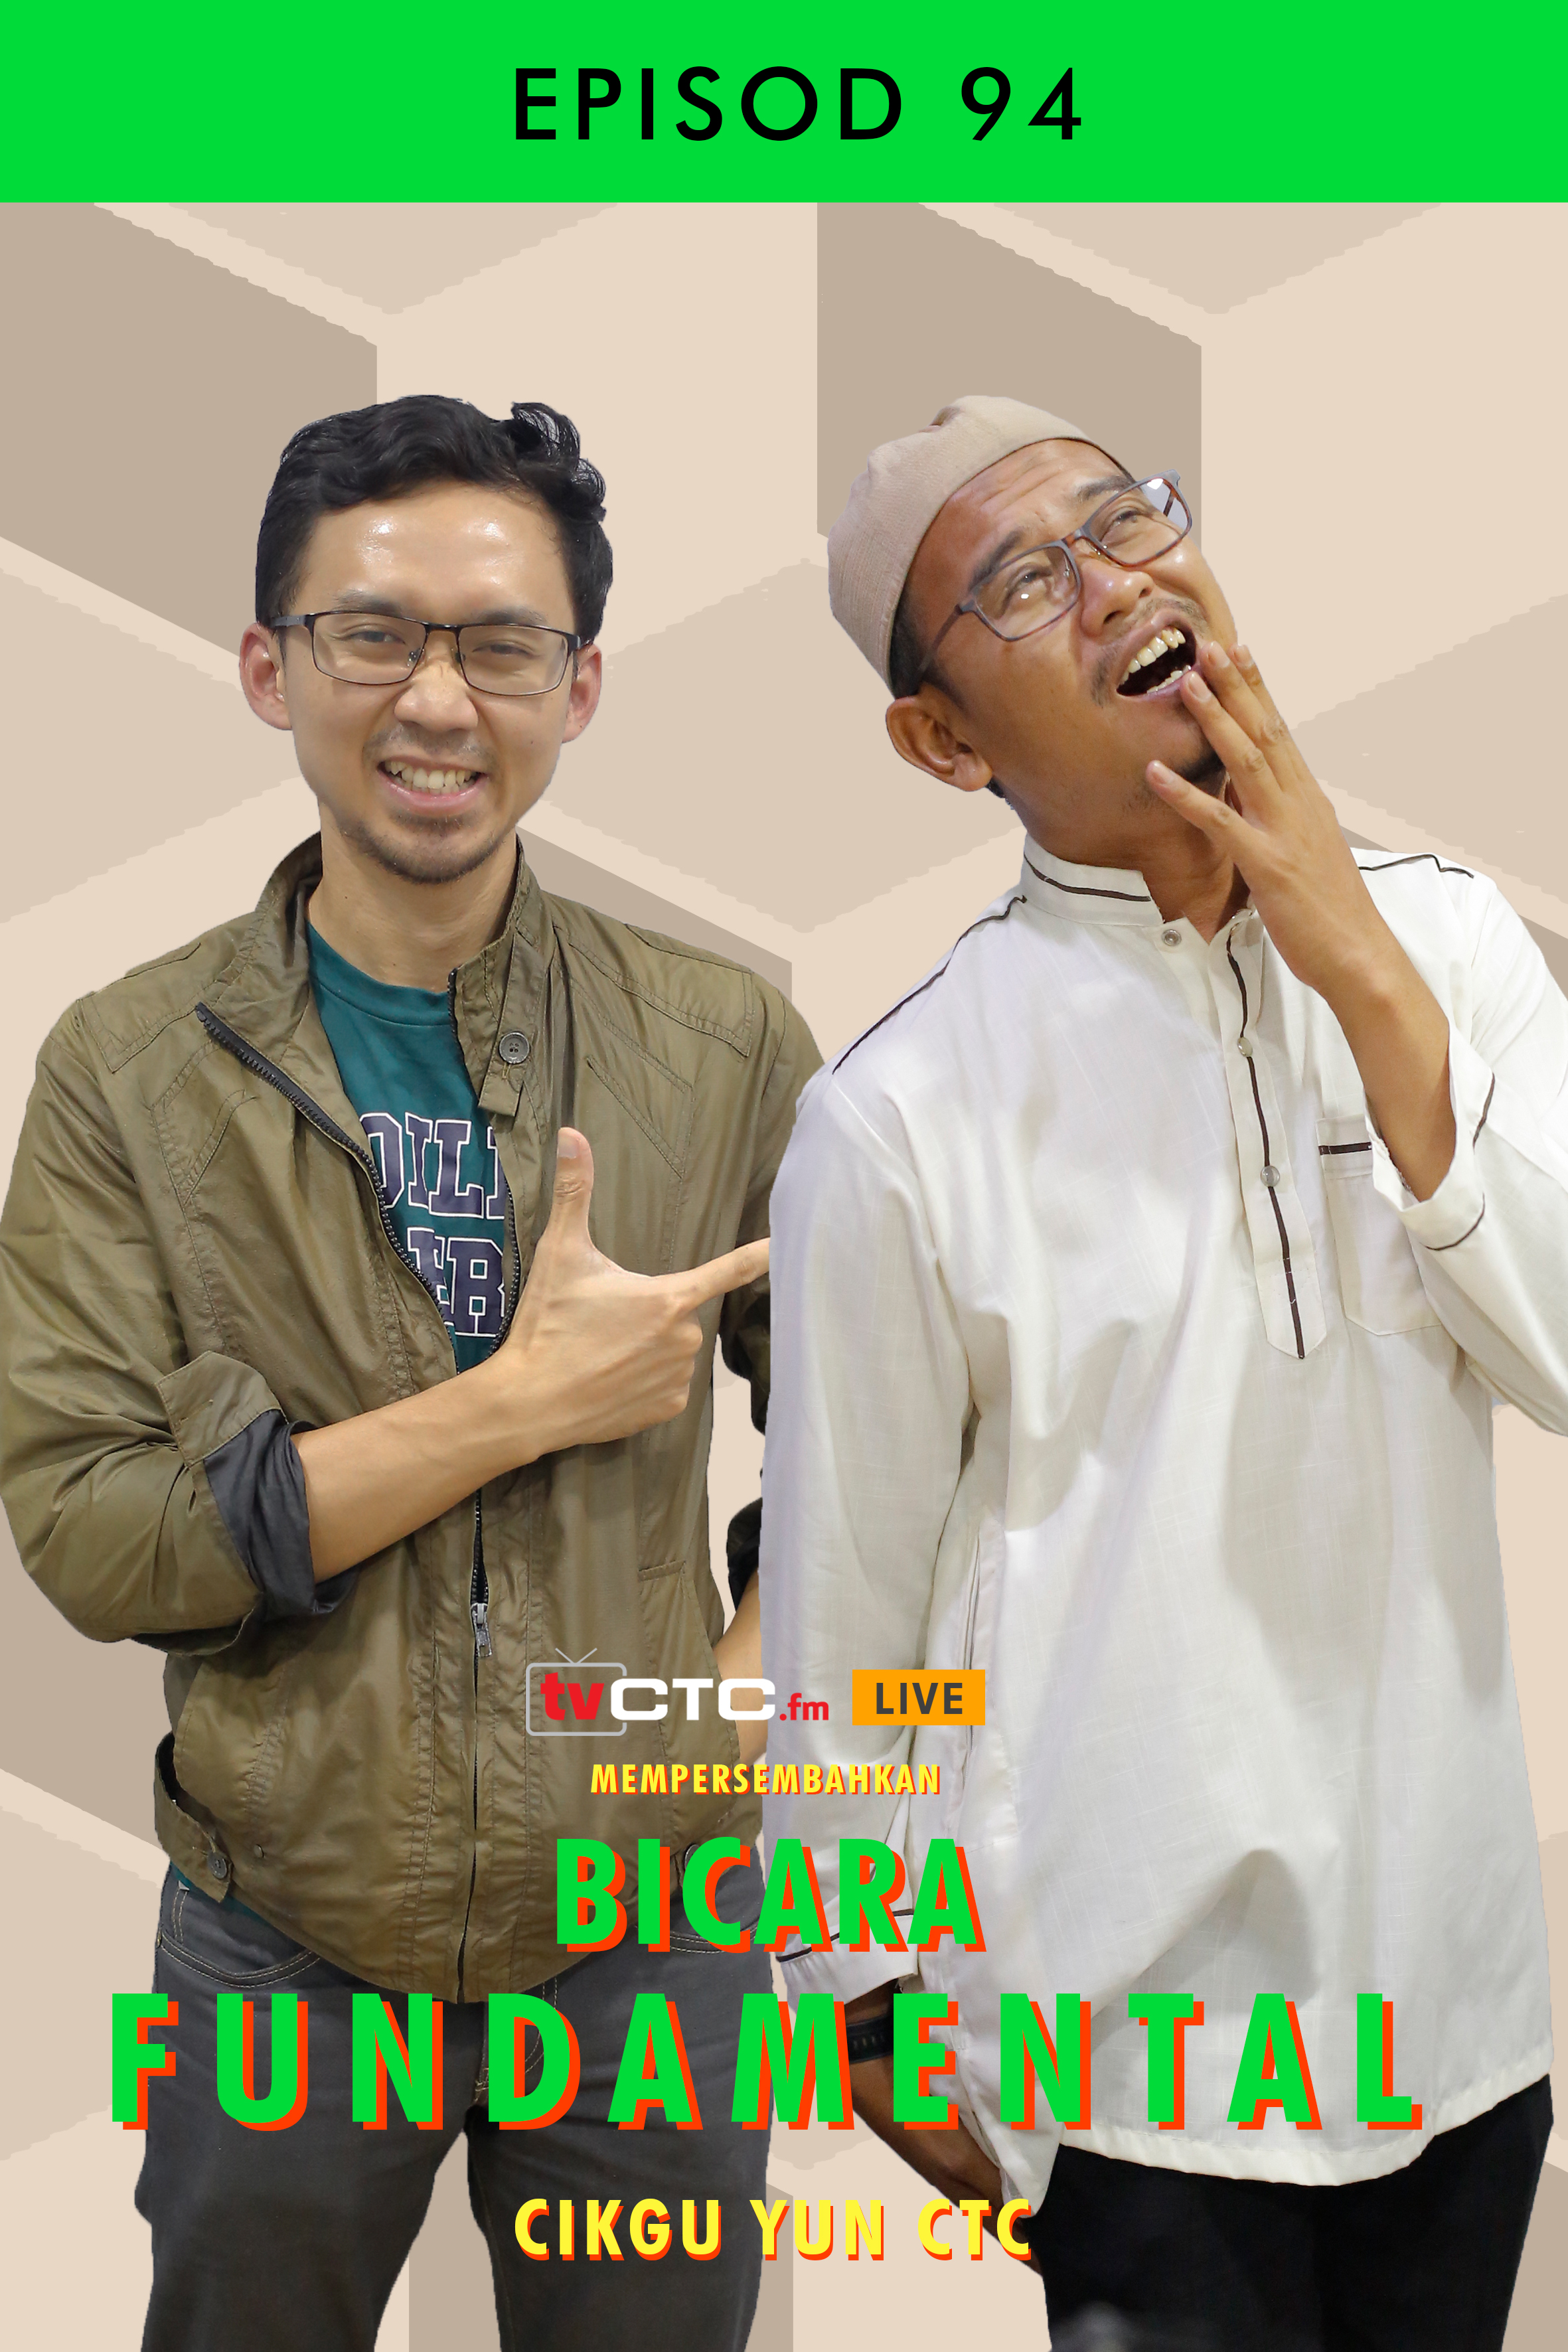 BICARA FUNDAMENTAL : Fundamental (Episod 94)